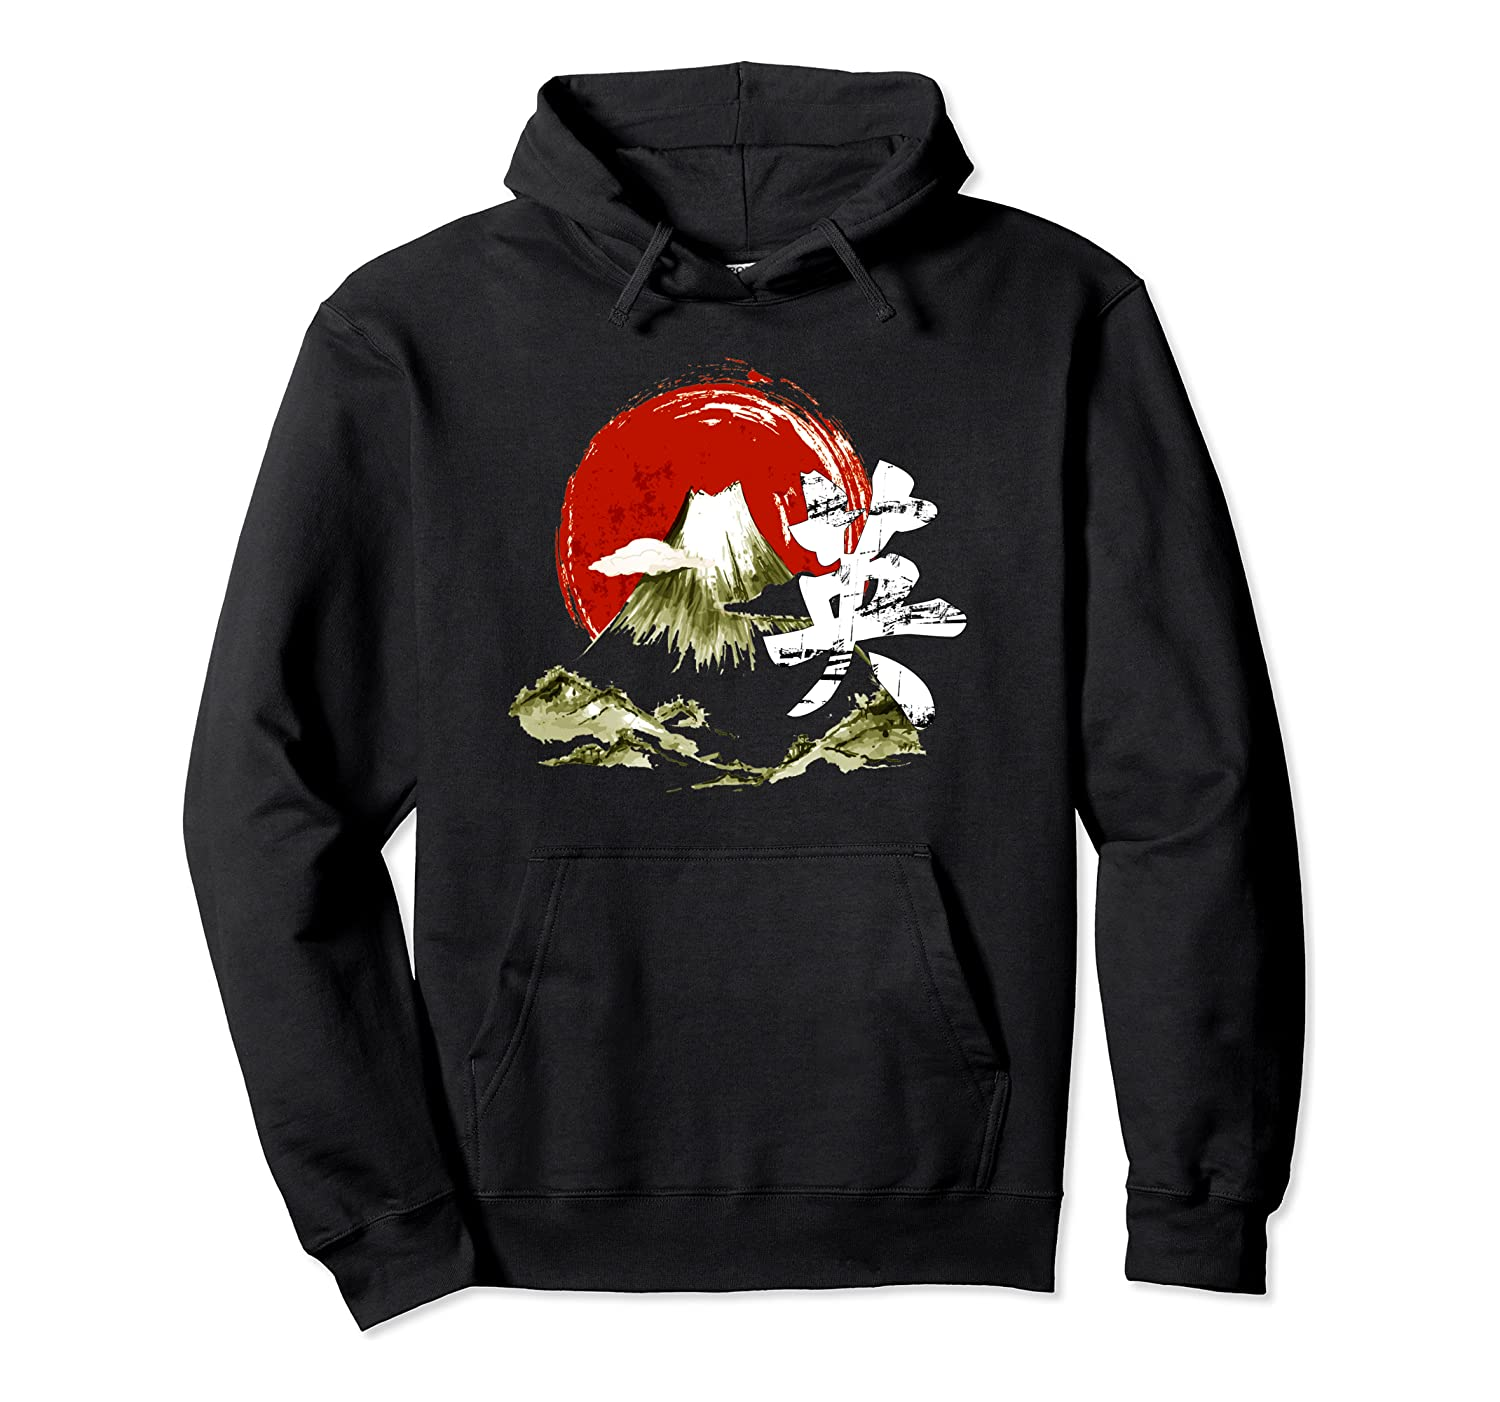 Distressed Courage Symbol Japanese Calligraphy Art Pullover Hoodie